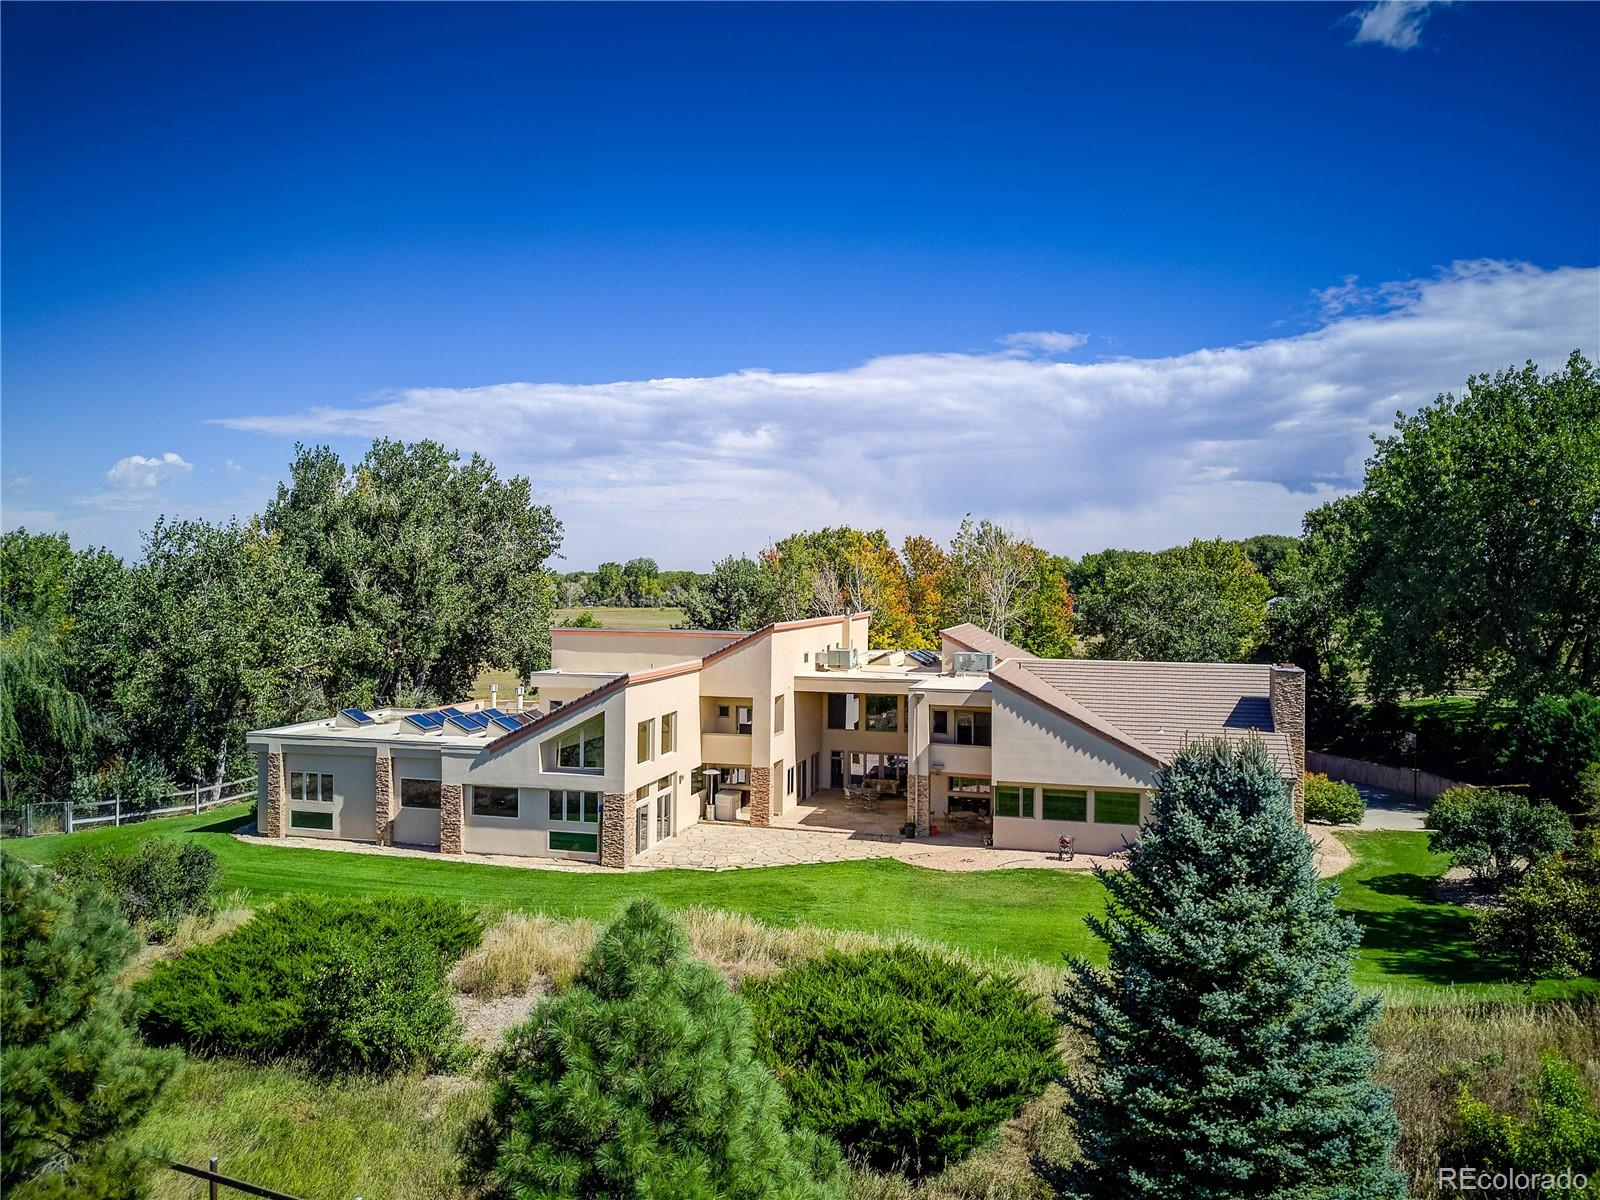 Breathtaking mountain views greet you upon entering this one-of-a-kind, 55 acre estate. Opulent Colorado Buffed Stone floors guide you to the main level game room complete with a home theater and wet bar. Continue on to the exercise room boasting a steam shower, tanning room, indoor pool and hot tub. The private spiral staircase leads you to the master suite featuring a luxurious 6 piece bath with a dual head steam shower and jetted tub. Follow the bright hallway lined with large, western facing windows to the secondary bedrooms equipped with en suite baths, large walk in closets, and private balconies. Relax next to a cozy fireplace in one of the numerous private living spaces, or entertain guests in the kitchen outfitted with deluxe Viking & SubZero appliances. Walk outside to the covered patio and expansive backyard. Idyllic horse property complete with water rights, fenced pastures, a private pond, and a barn with individual runs.